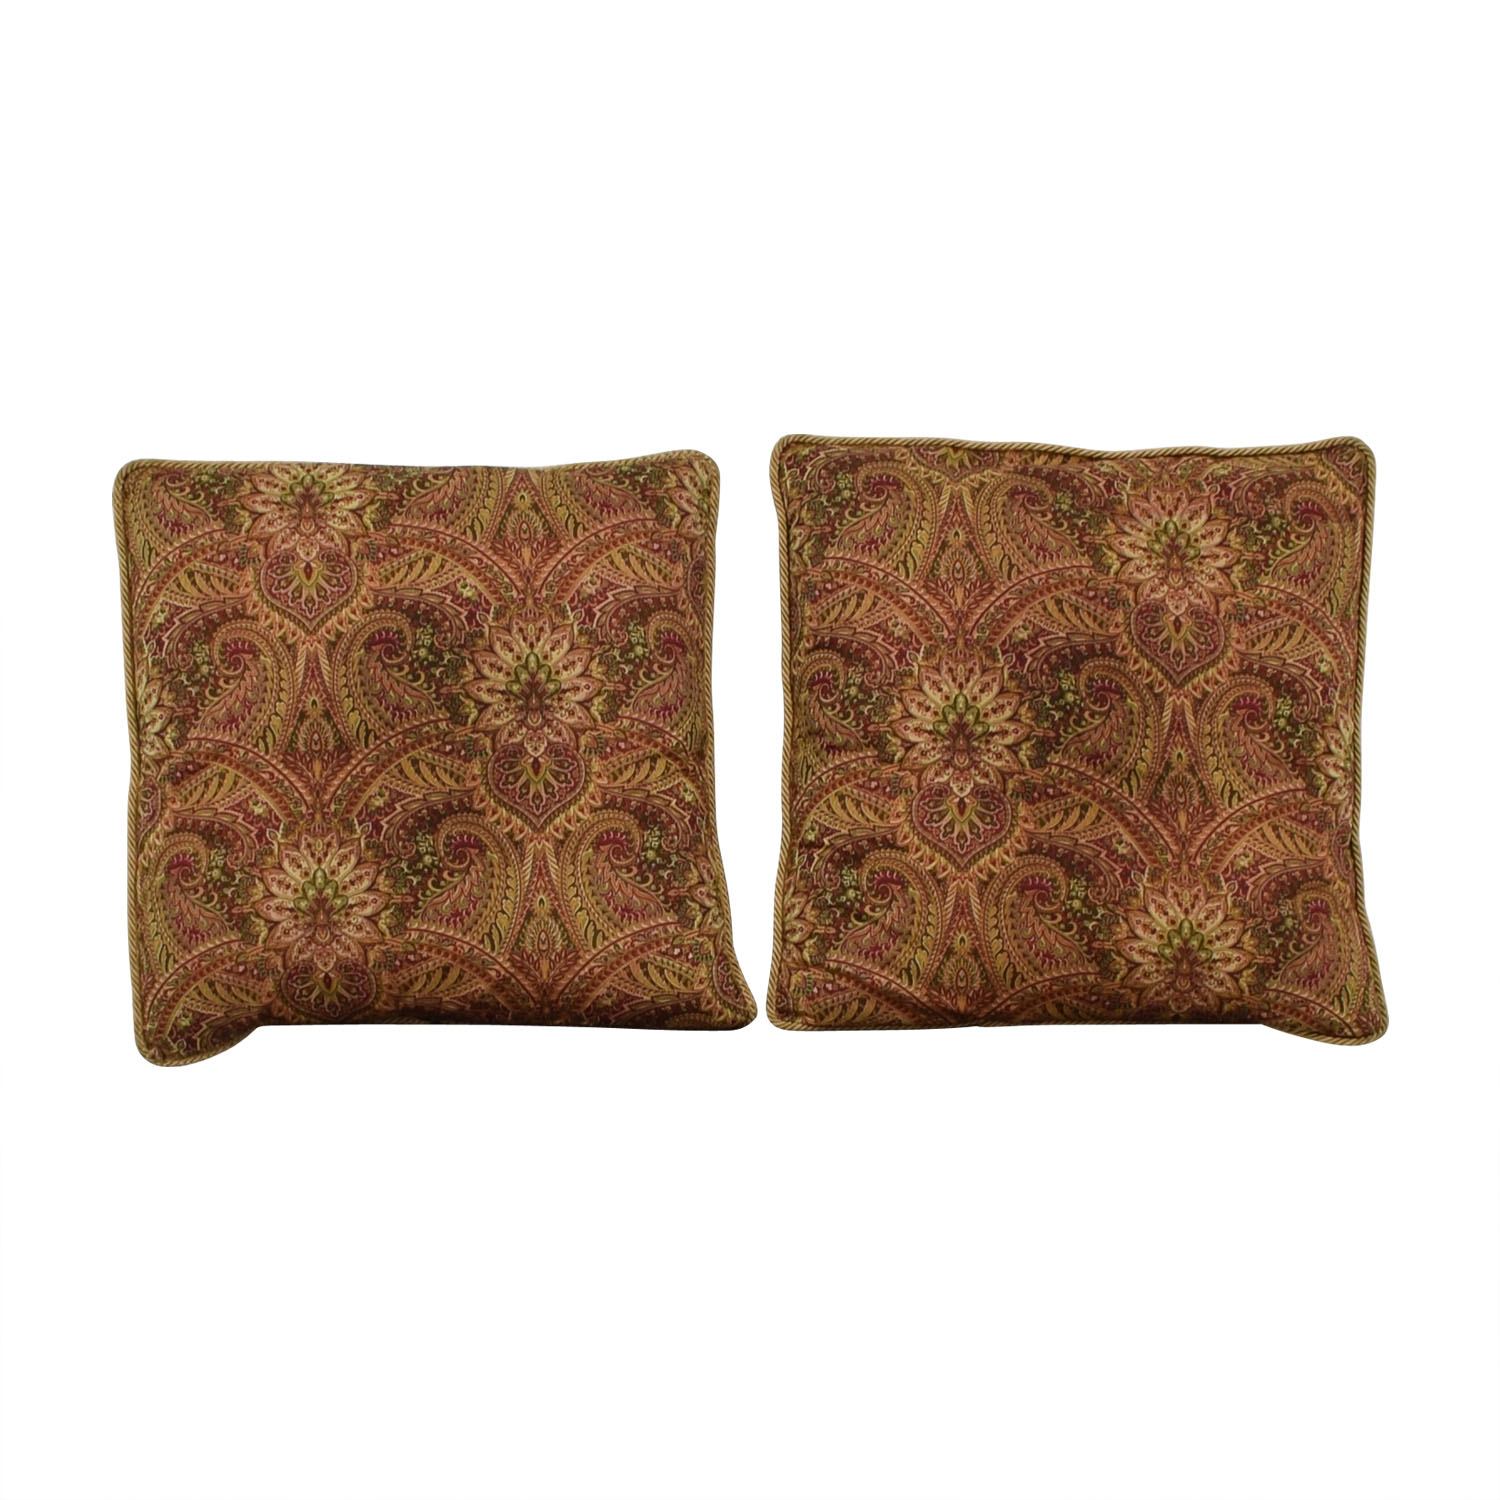 buy Paisley Floor Pillows with Gold Braid Trim